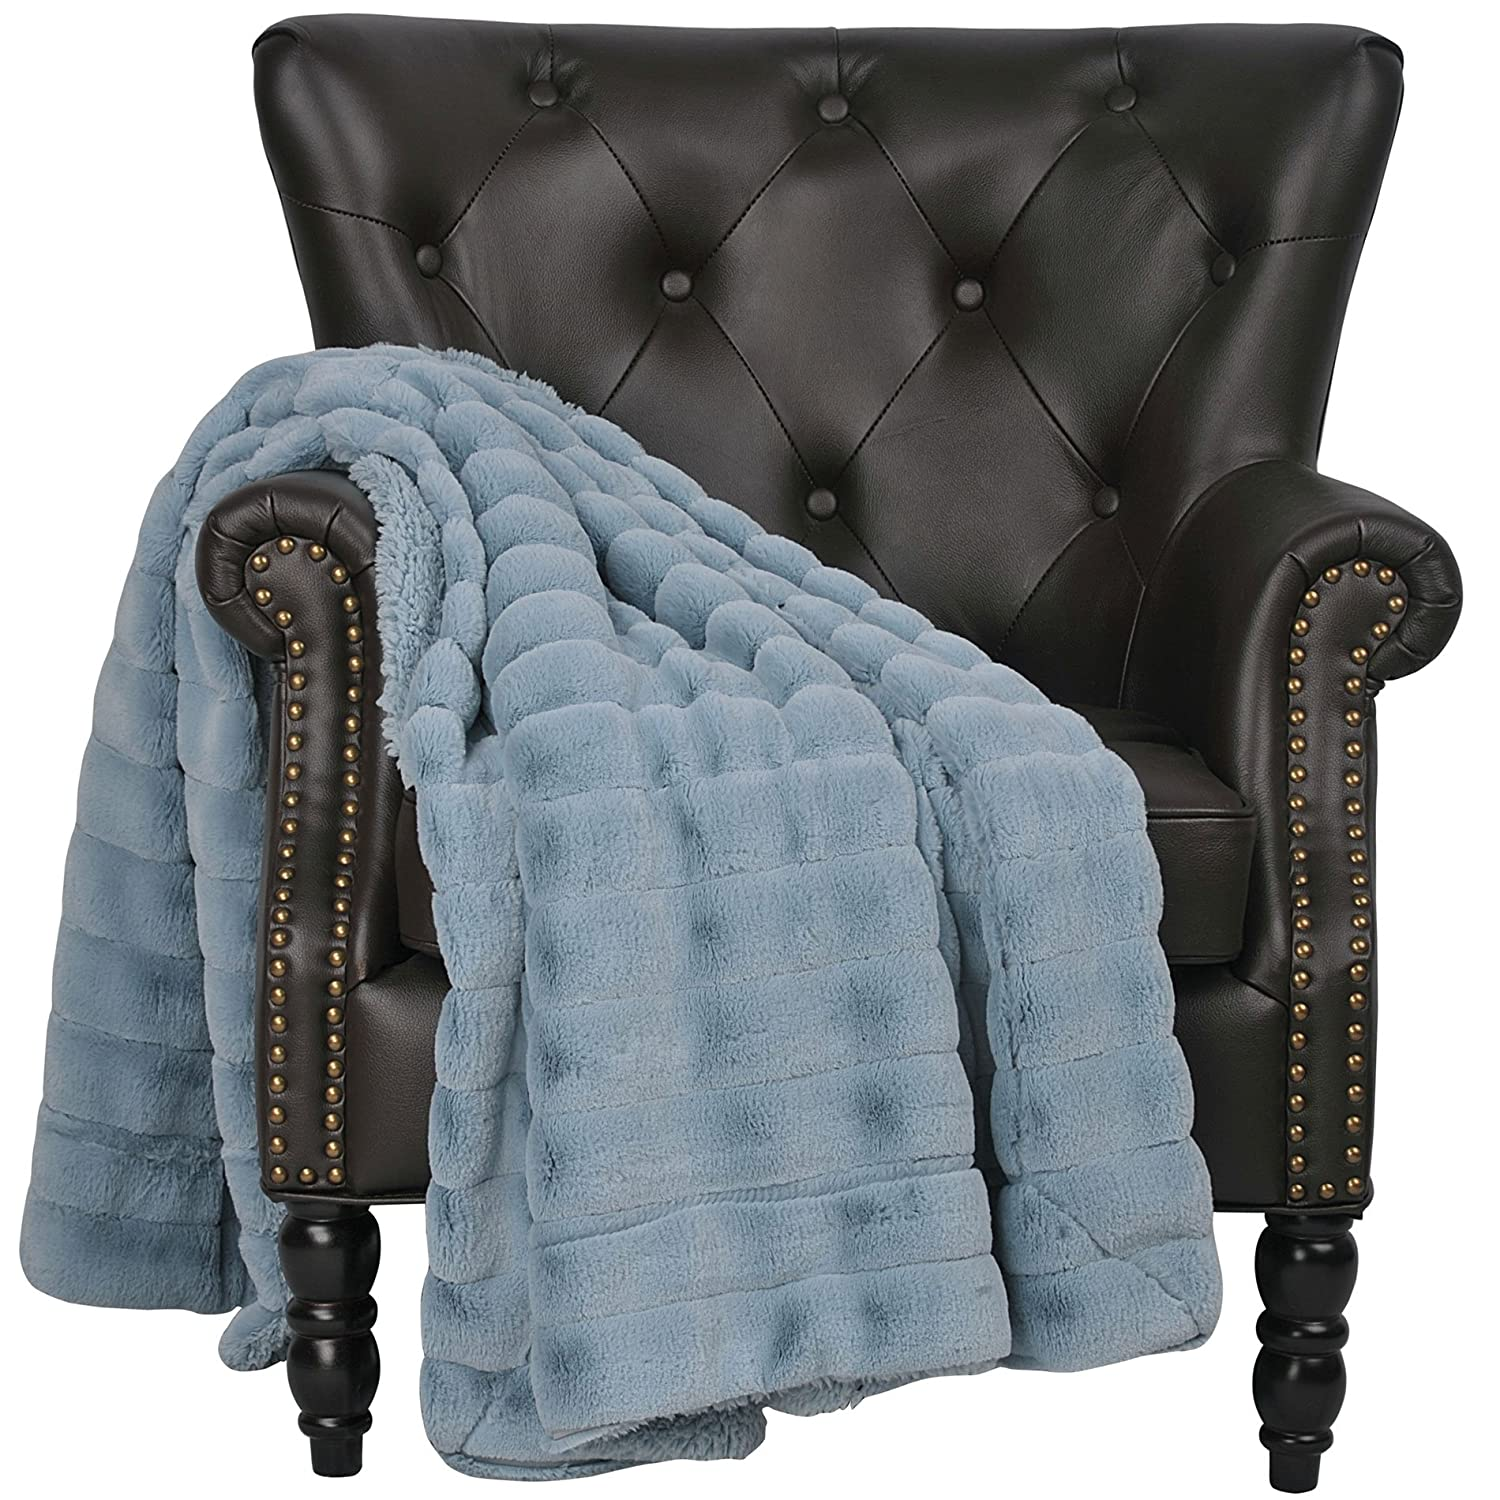 50 x 60 Bright White 50 x 60 BNF Home THRSM5060BW BOON Super Mink Faux Fur Throw with Micromink Backing